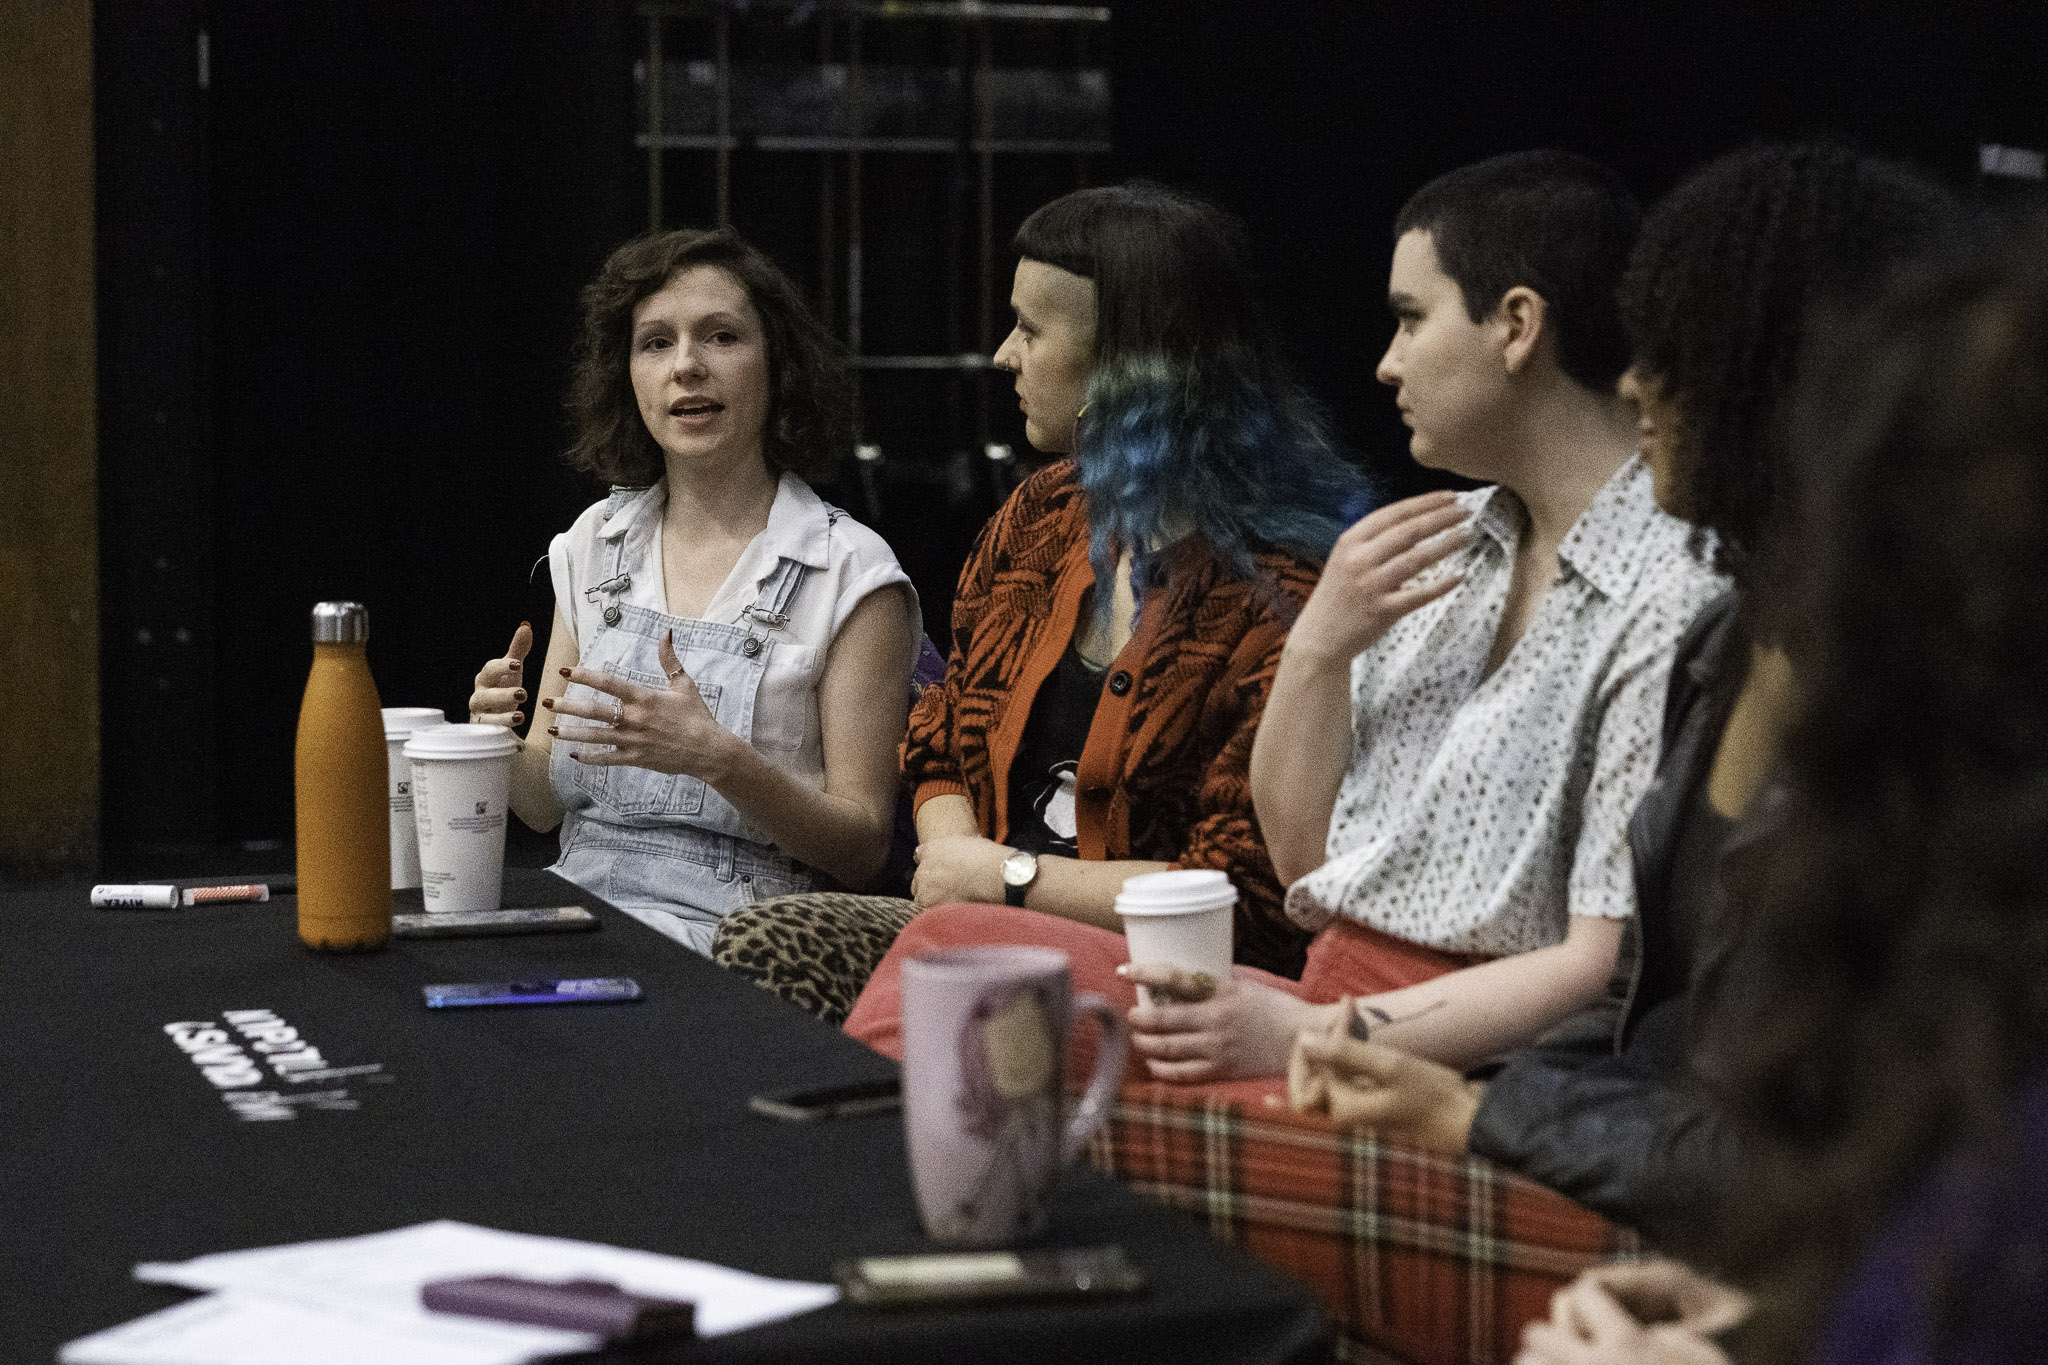 Group of female producers sitting around a table having a discussion